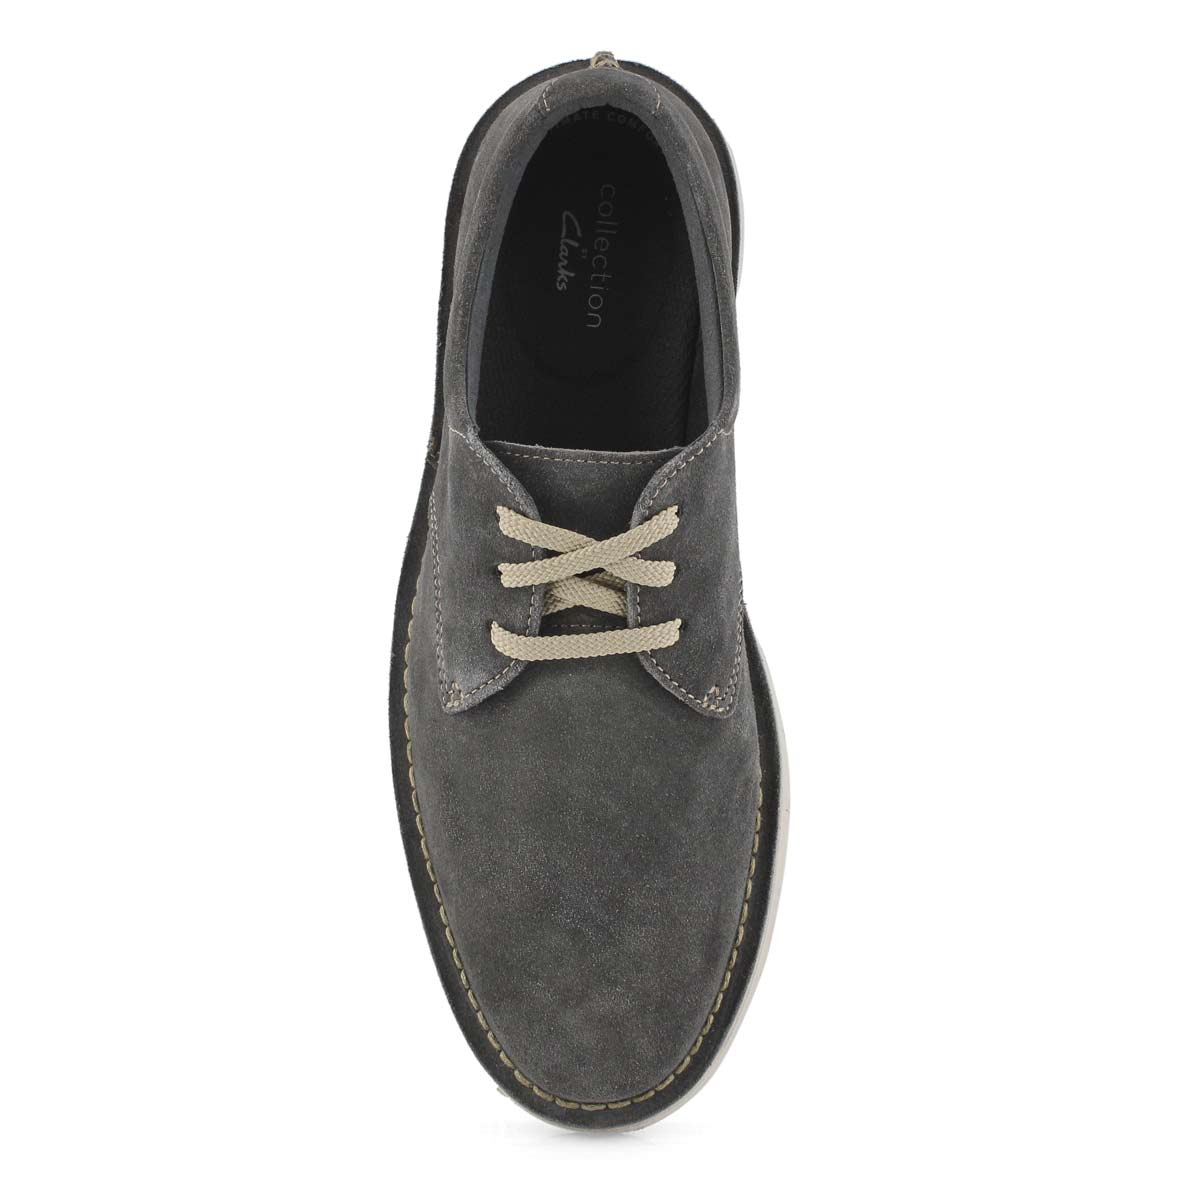 Men's Forge Vibe Casual Oxford - Storm